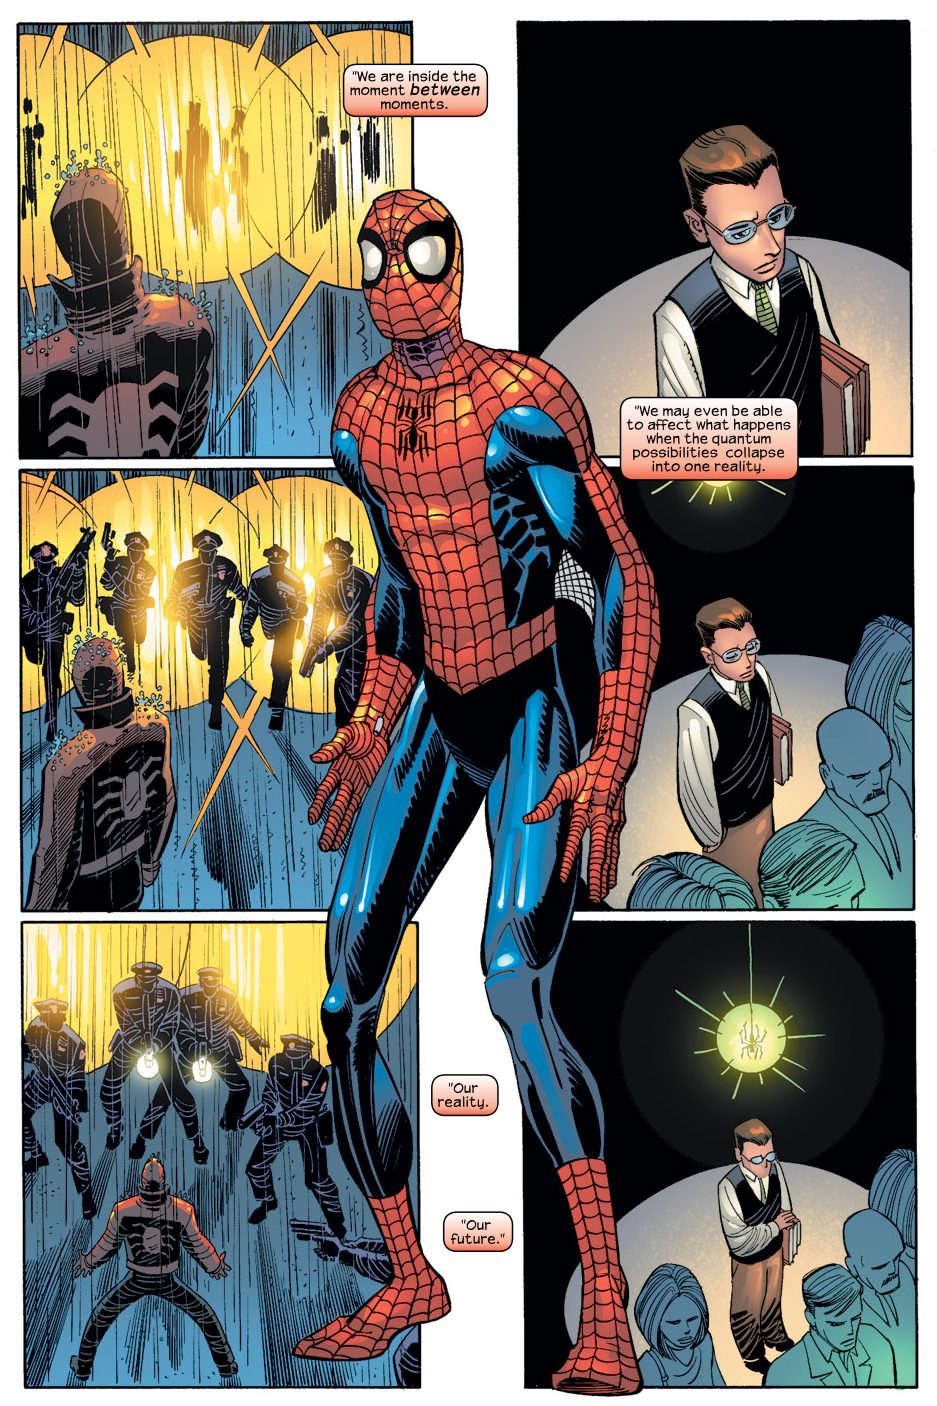 The Amazing Spider-Man Vol. 2 #58